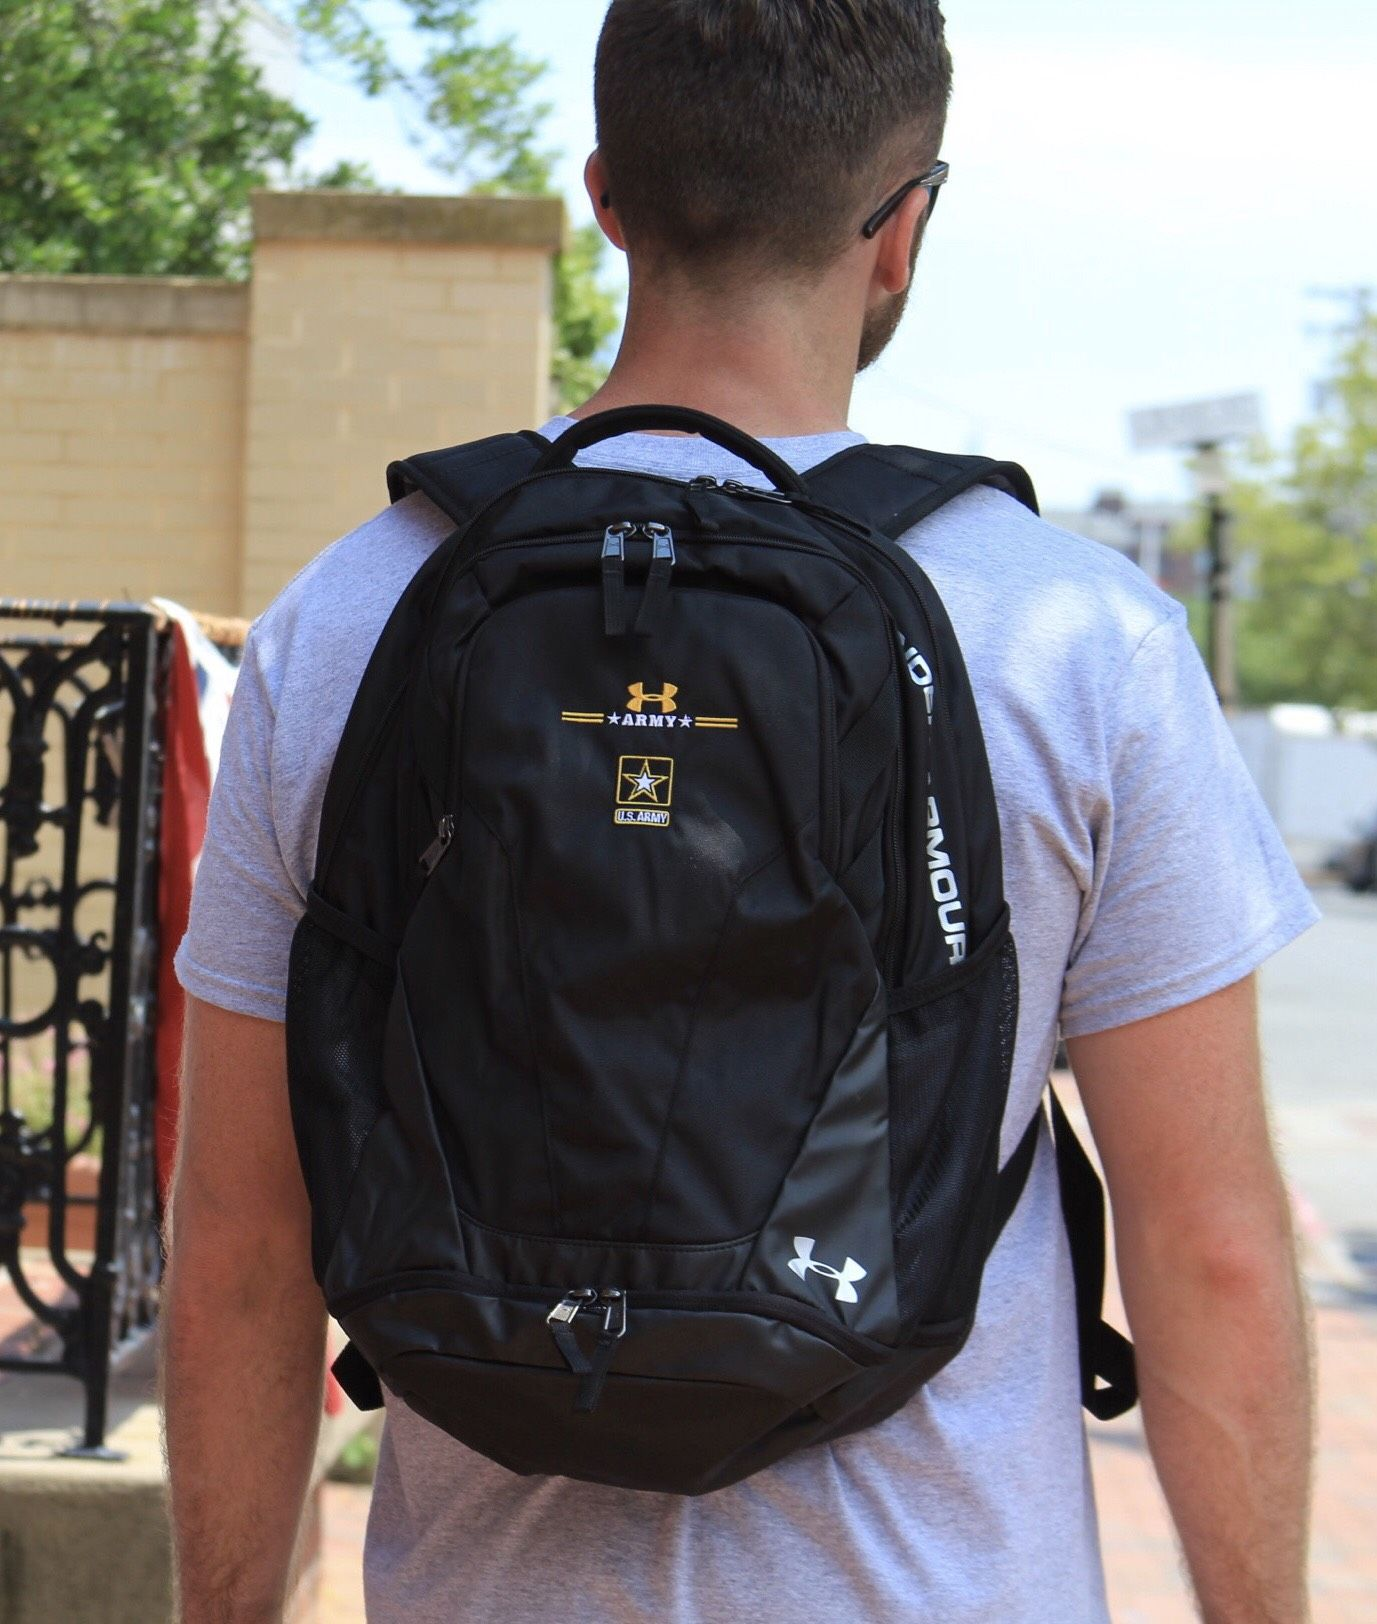 bc849ba1e1 The Army Under Armour Storm Hustle III Backpack in graphite is a great way  to wear your Army Pride!